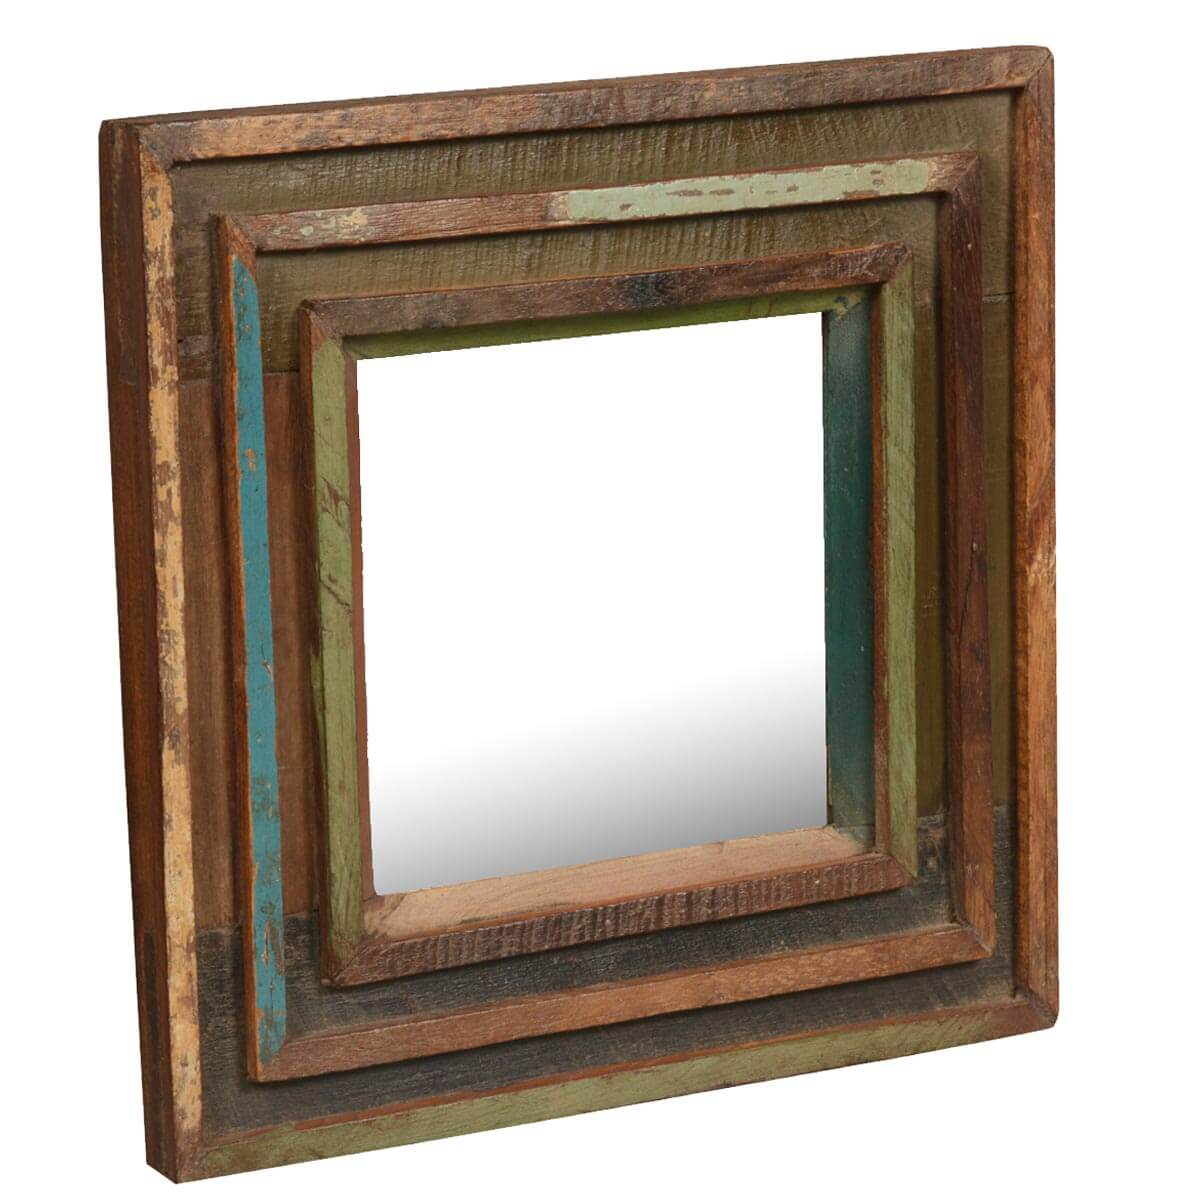 Appalachian Rustic Reclaimed Wood 12.5 Square Framed Wall Mirror